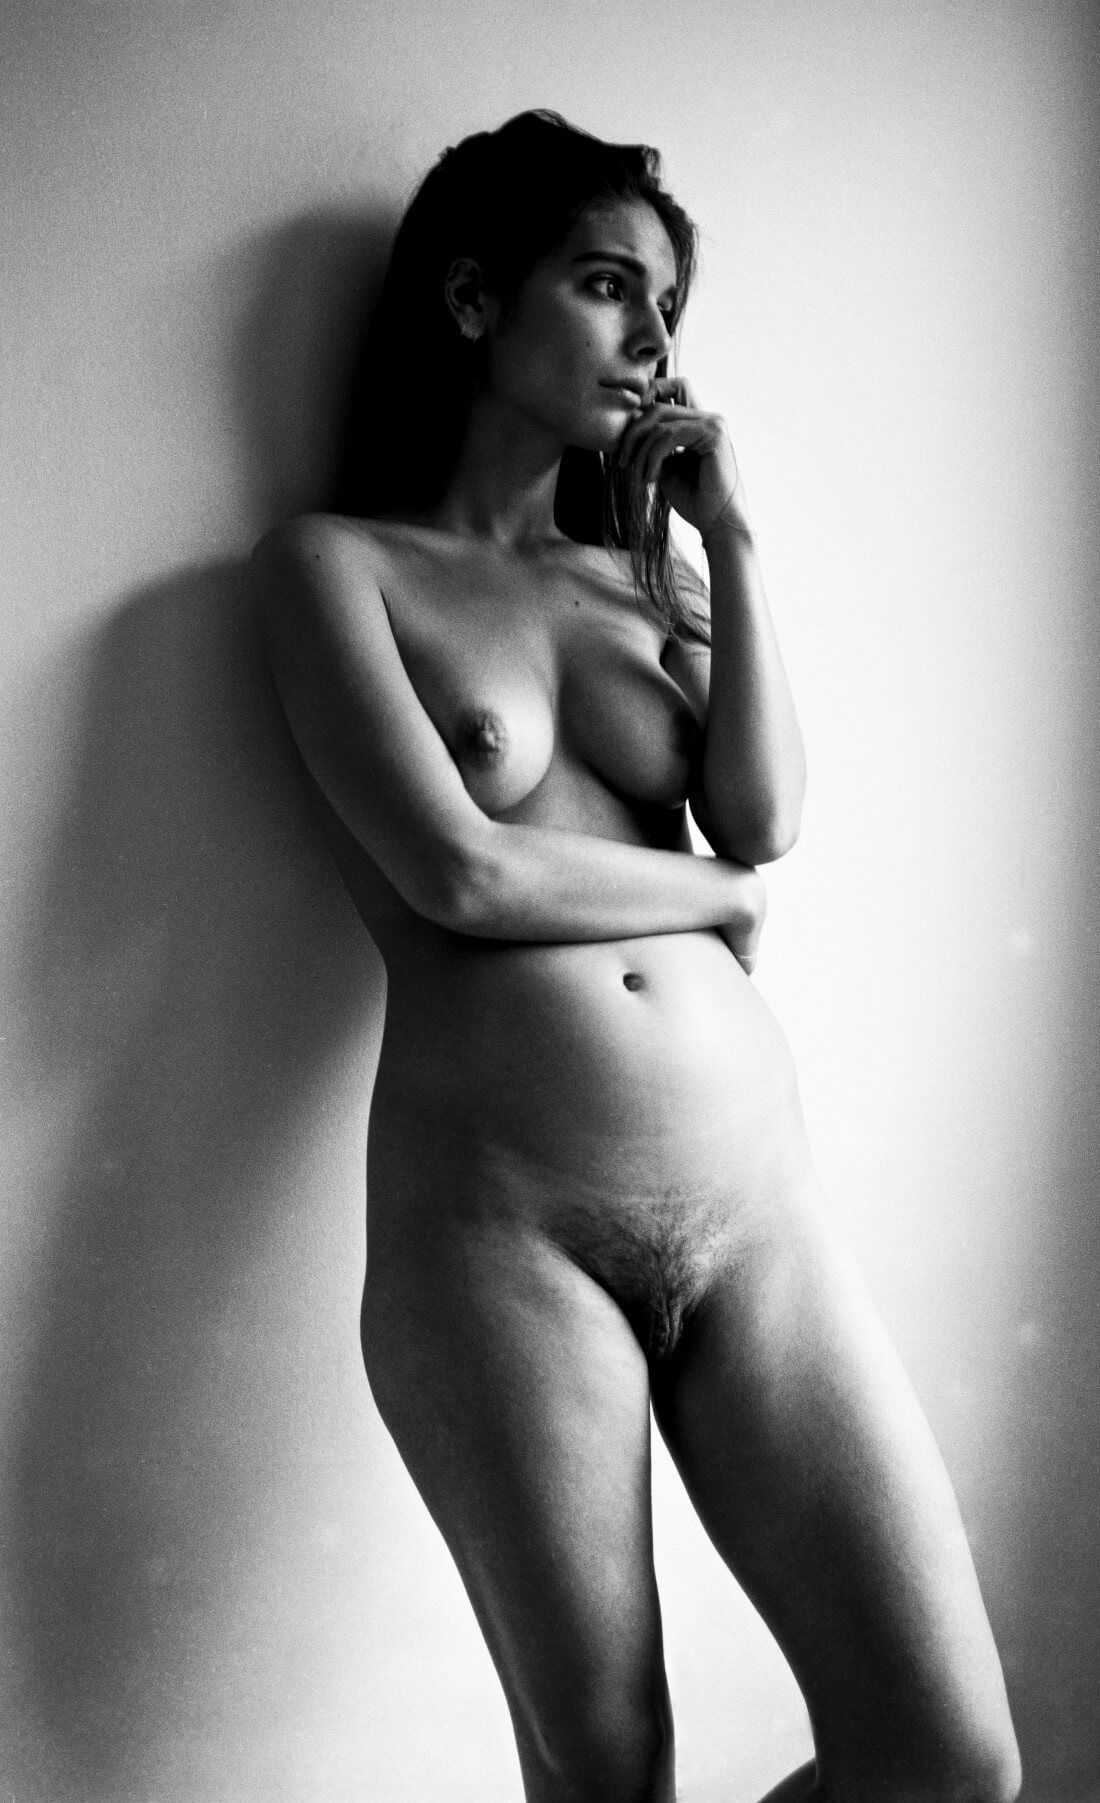 caitlin-stasey-is-reclaiming-the-female-body-by-publishing-her-own-naked-photos-on-the-internet-body-image-1422460535